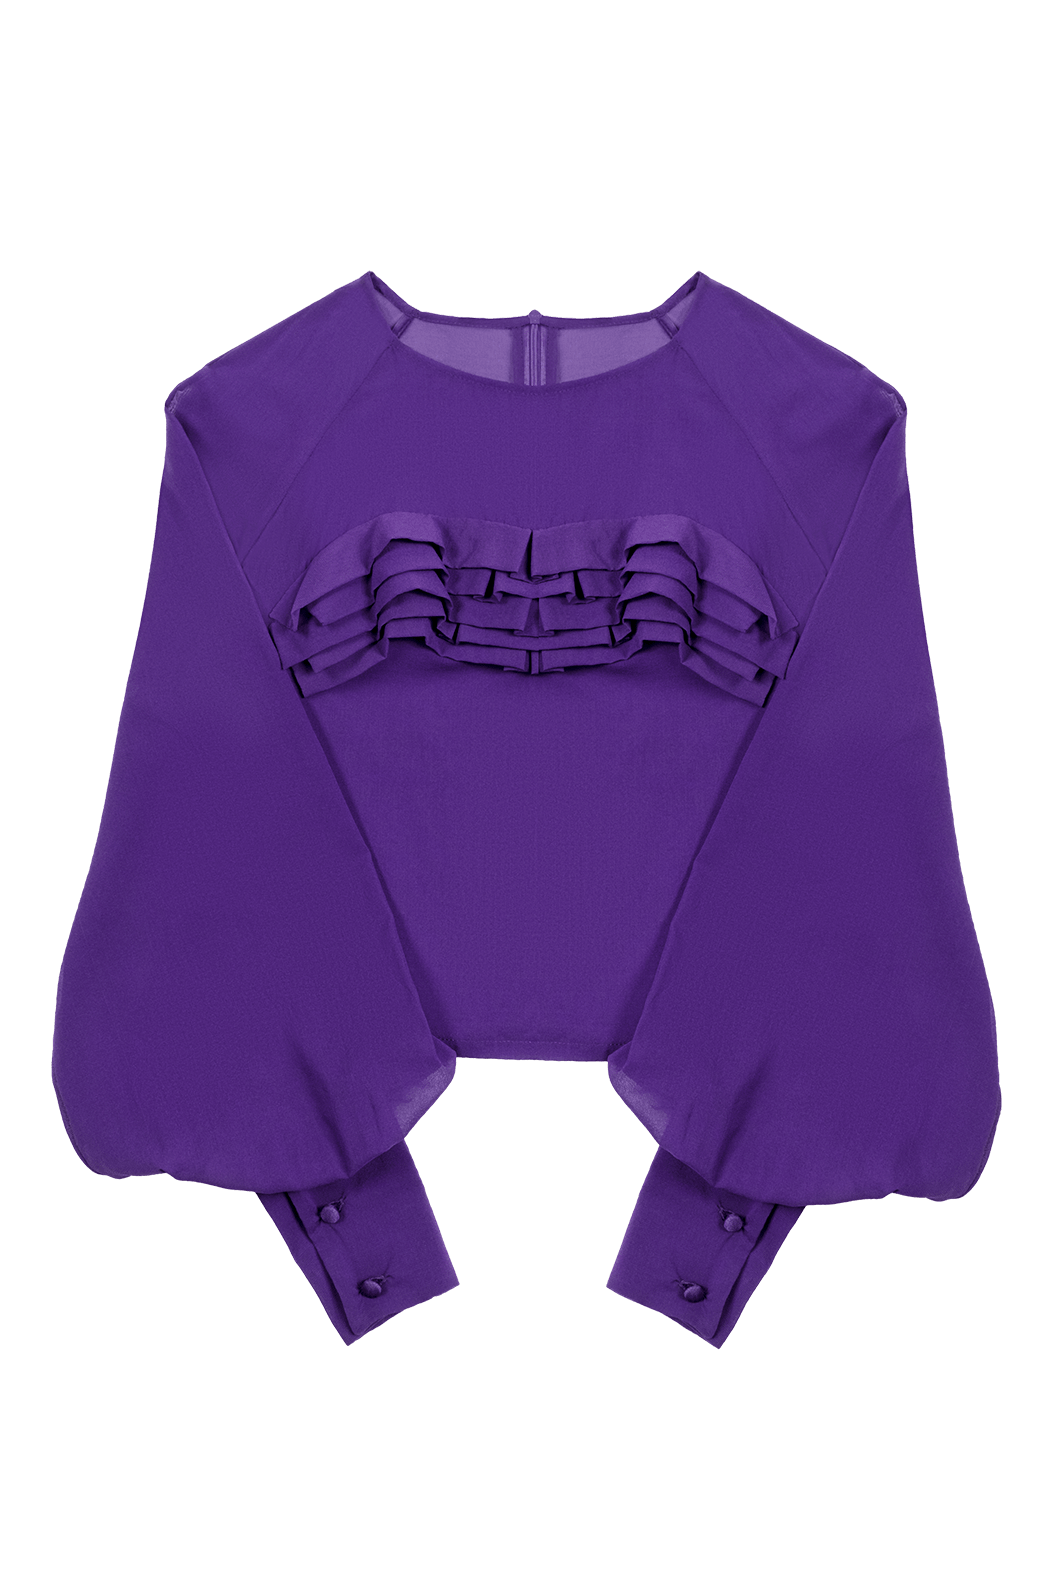 Plum Sheer Top with Wave Appliqué Flat